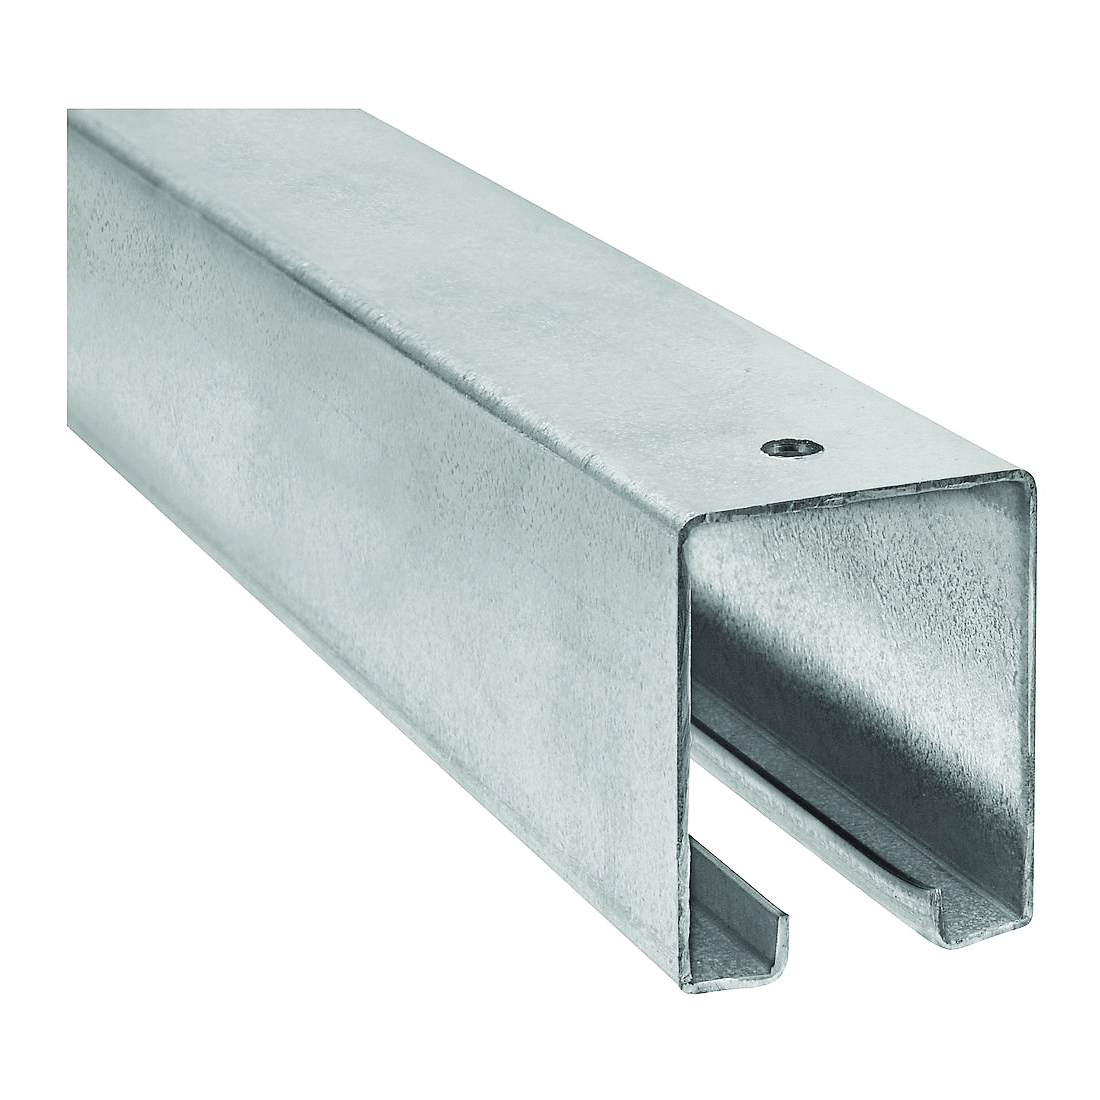 Picture of National Hardware N105-726 Box Rail, Steel, Galvanized, 1-57/64 in W, 2-13/32 in H, 8 ft L